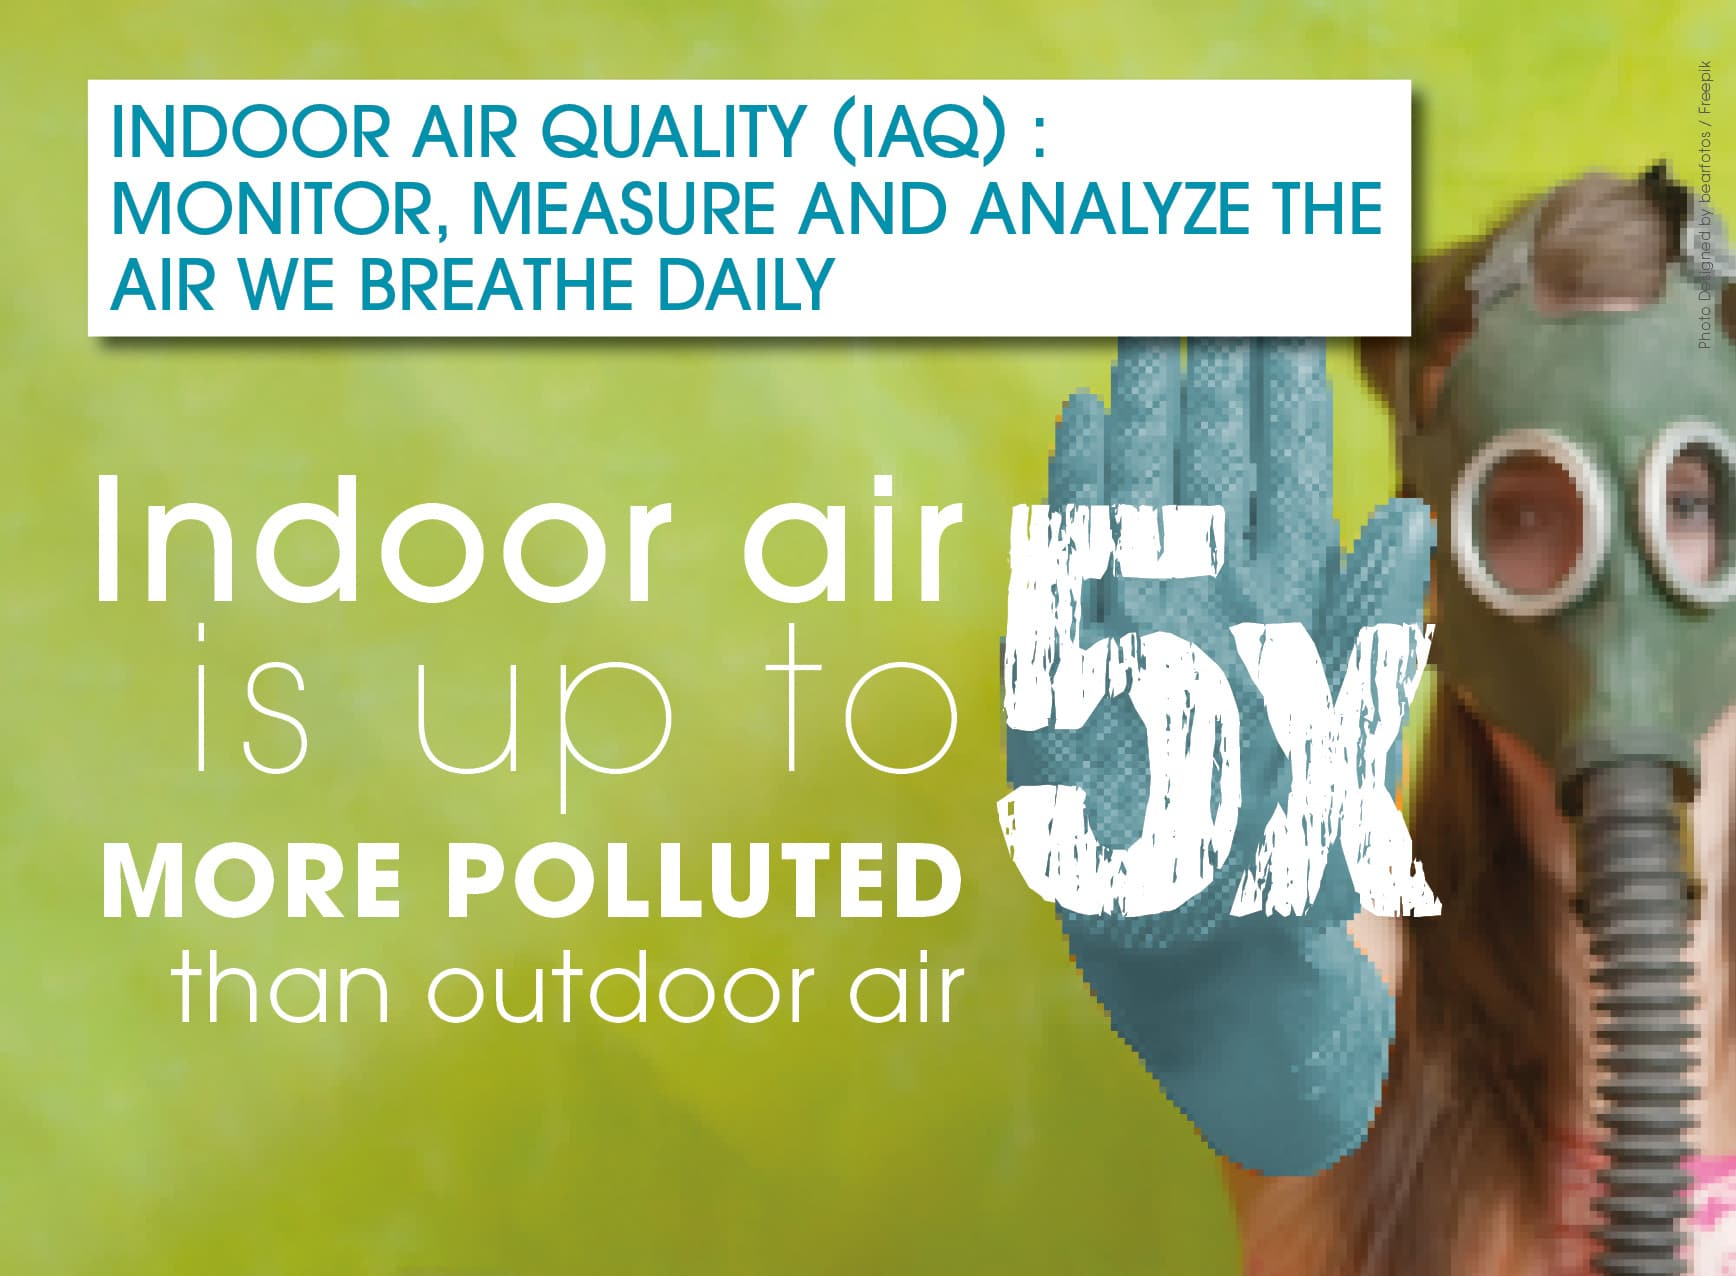 IAQ : Indoor air is up to 5 times more polluted than outdoor air!